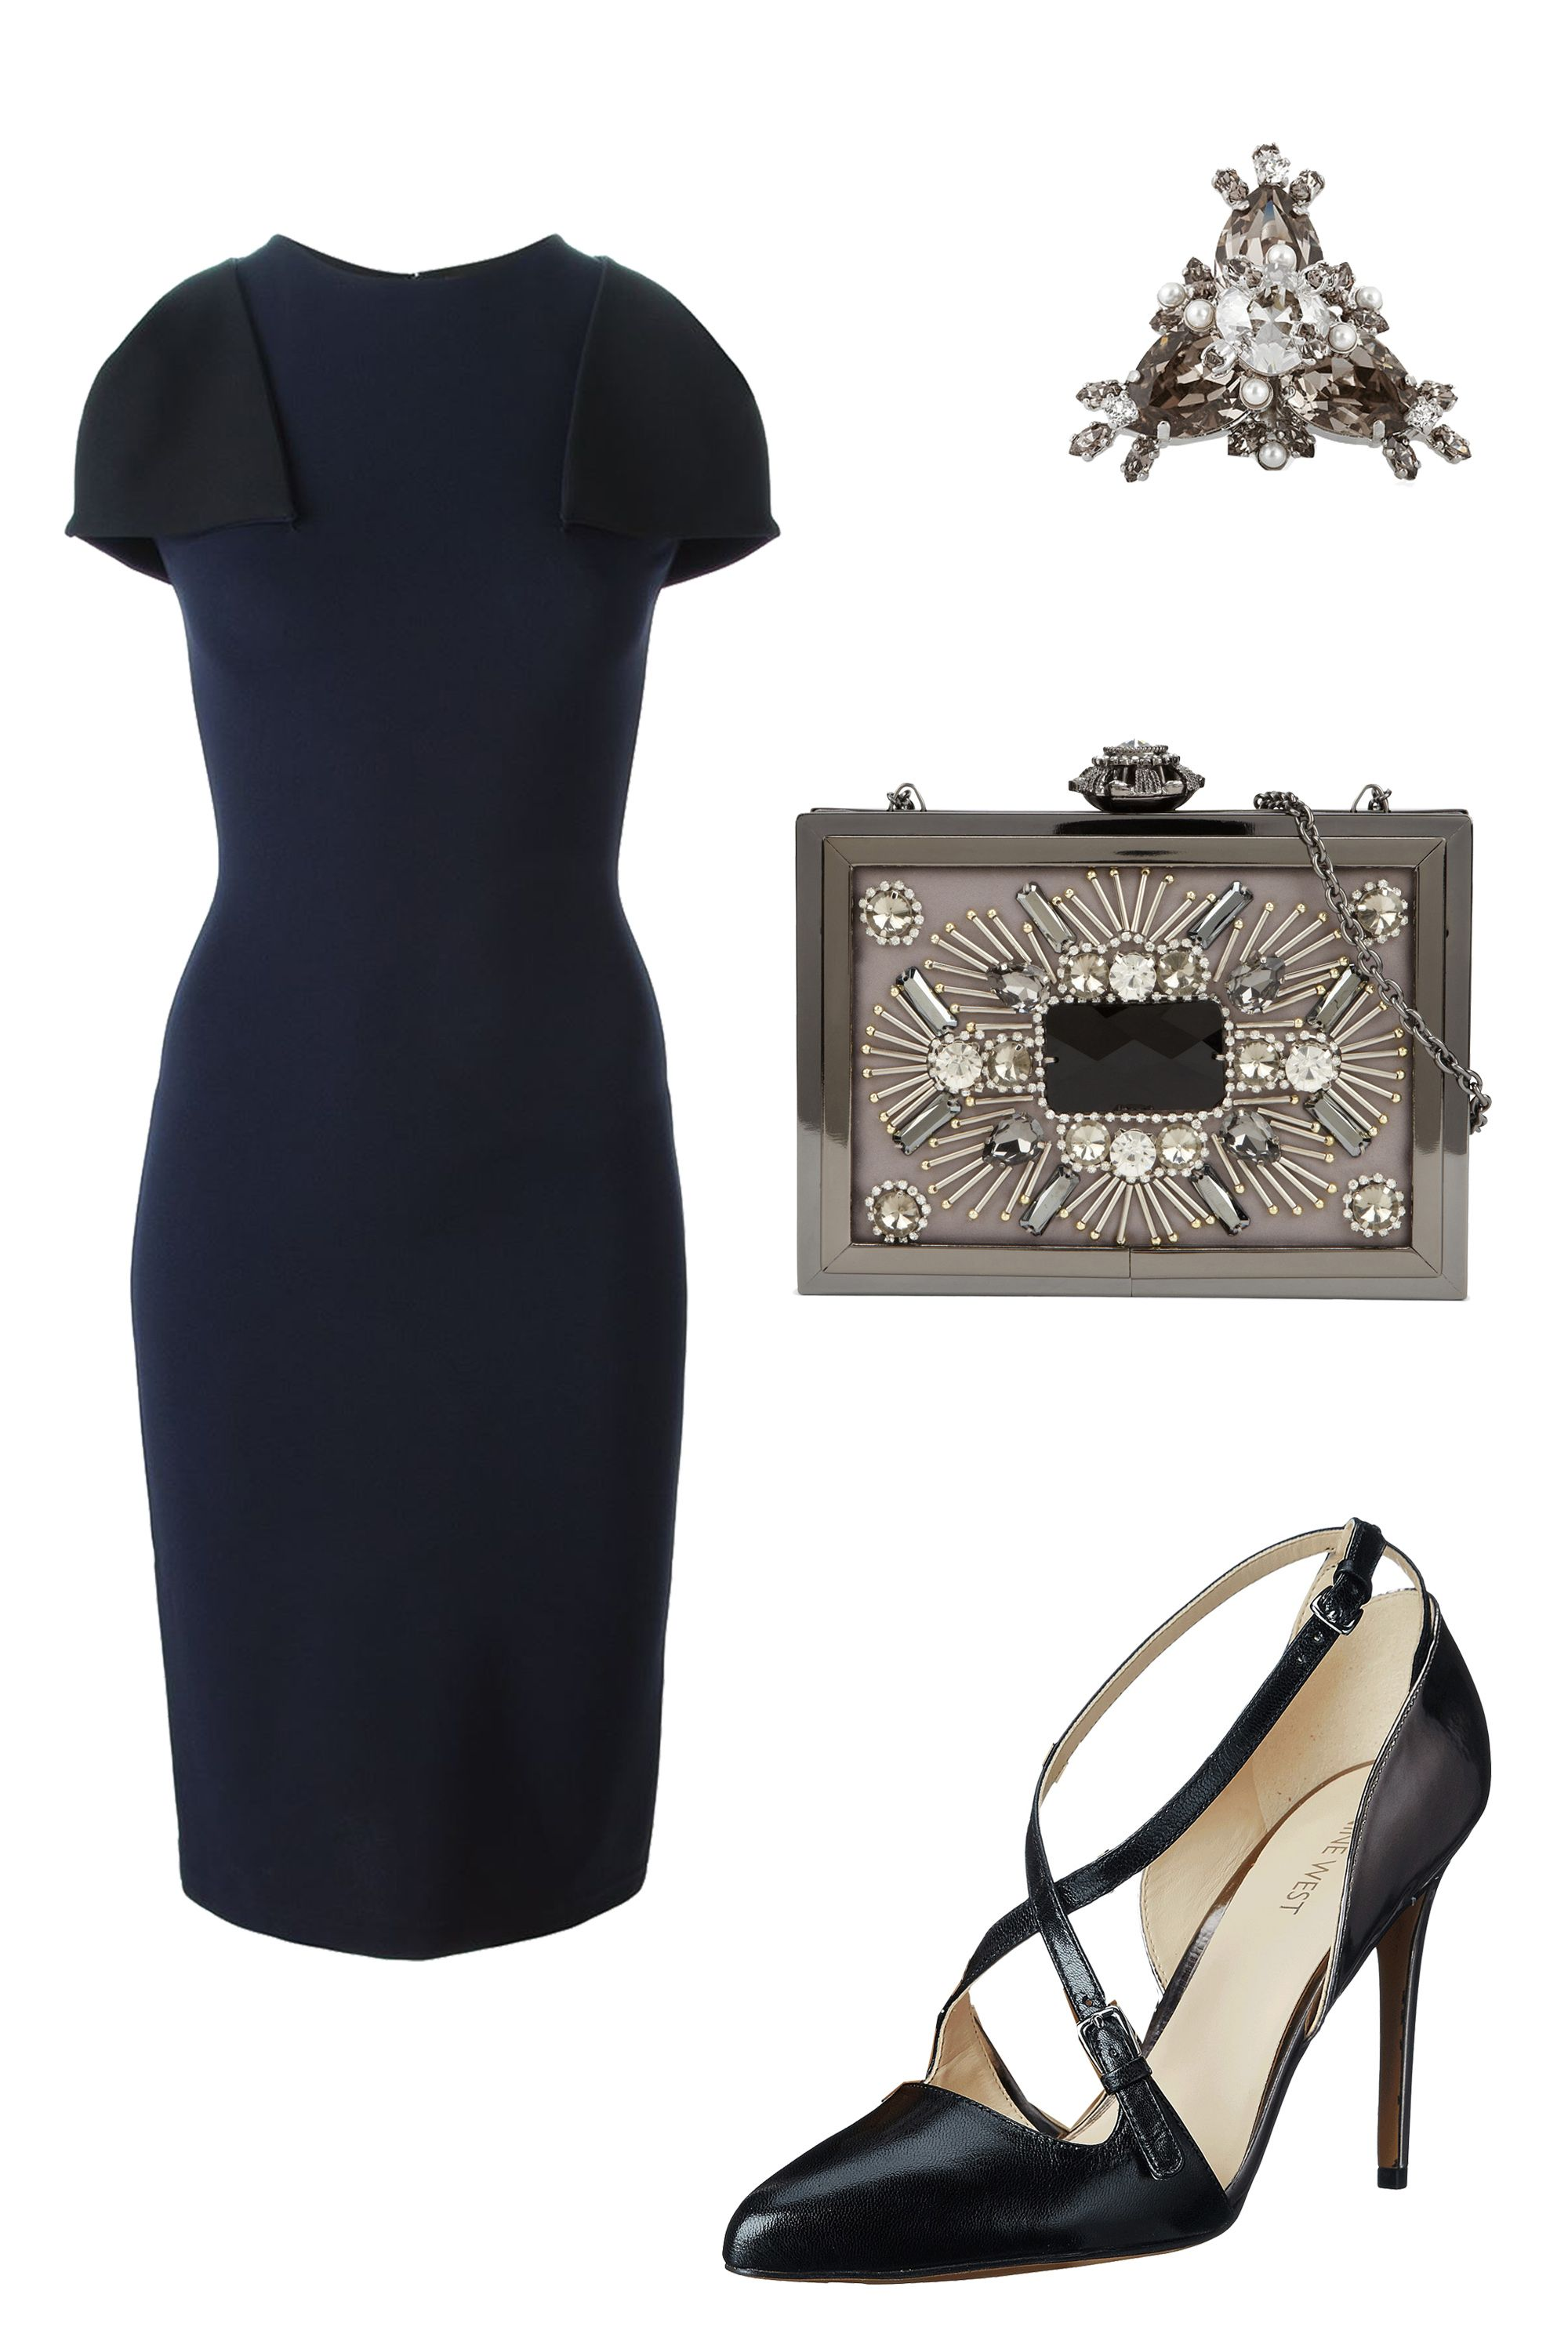 "<p>A boss-lady sheath and pointy-toe pumps works for a boardroom presentation <em>and</em> a romantic dinner, plus champagne nightcap. </p><p>Christopher Kane Flap Sleeve Pencil Dress, $464; <a href=""http://www.farfetch.com/shopping/women/christopher-kane-flap-sleeves-pencil-dress-item-11068087.aspx?storeid=9258&ffref=lp_pic_2_9_"" target=""_blank"">farfetch.com</a><br></p><p>Givenchy Cocktail Ring, $765; <a href=""http://www.net-a-porter.com/us/en/product/511260/givenchy/cocktail-ring-in-palladium-tone-brass--crystal-and-faux-pearl"" target=""_blank"">net-a-porter.com</a></p><p>Aldo Windflower, $60; <a href=""http://www.aldoshoes.com/us/en_US/handbags/clutches-%26-evening-bags/c/343/WINDFLOWER/p/44181253-12?position=4"" target=""_blank"">aldoshoes.com</a></p><p>Nine West Earnest, $89; <a href=""http://www.zappos.com/product/8713817/color/63144"" target=""_blank"">zappos.com</a></p>"